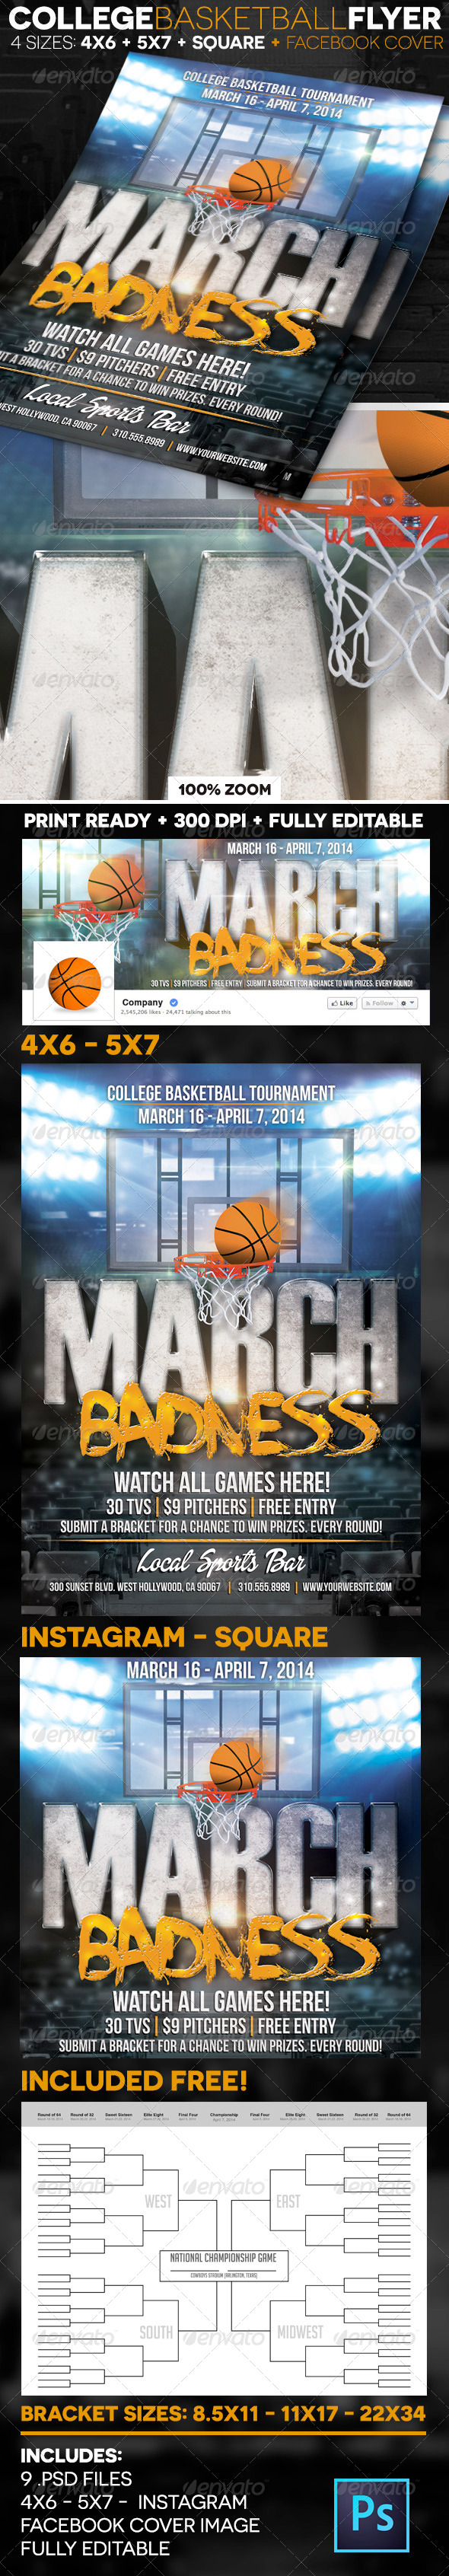 Pin By Nichole Mayes On Ideas College Basketball Basketball Pictures Sports Flyer